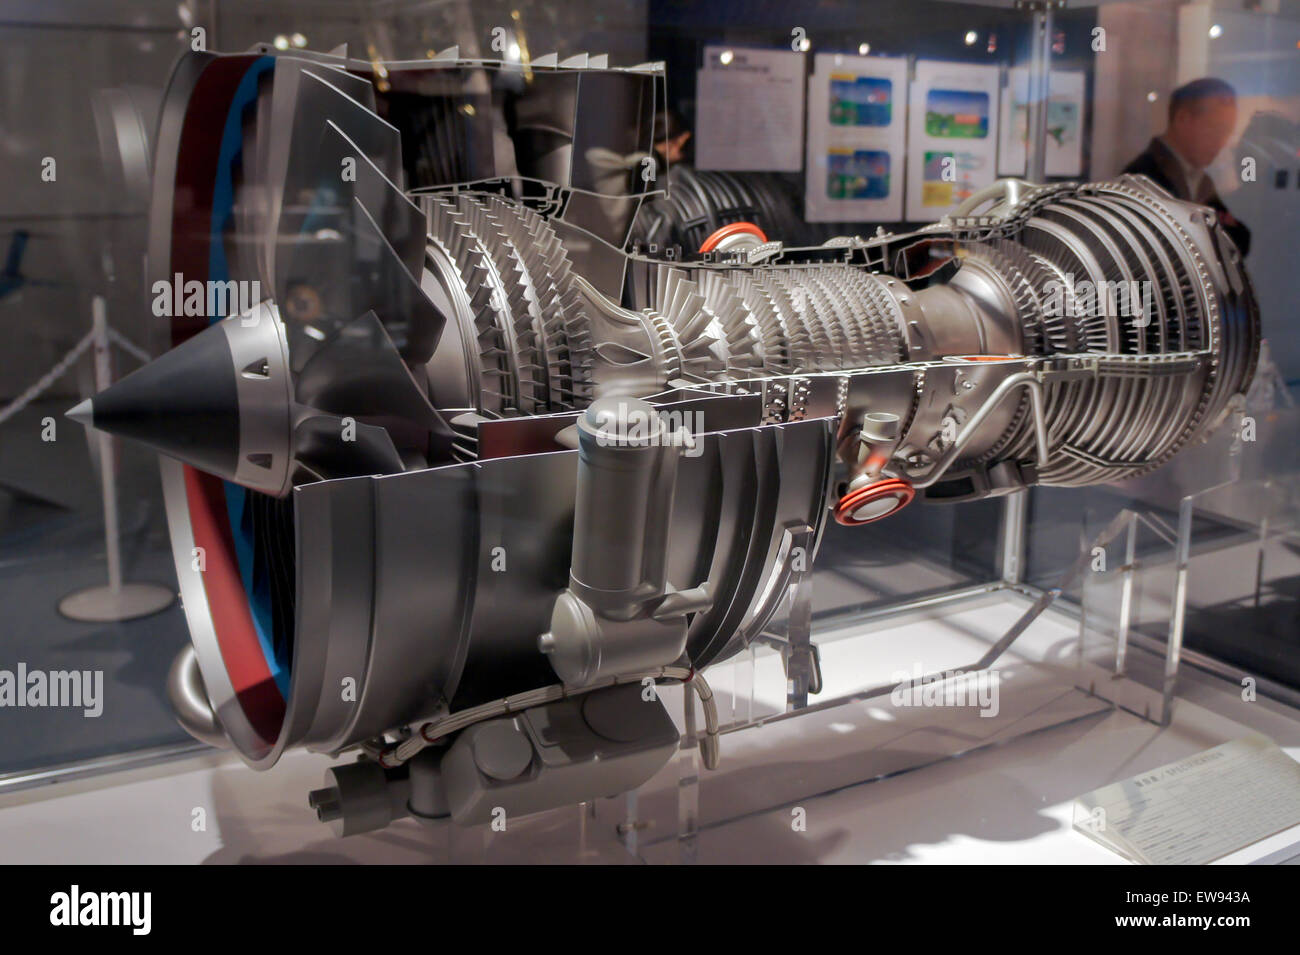 IAE V2500 engine cutaway model 2010 The Sky and Space - Stock Image